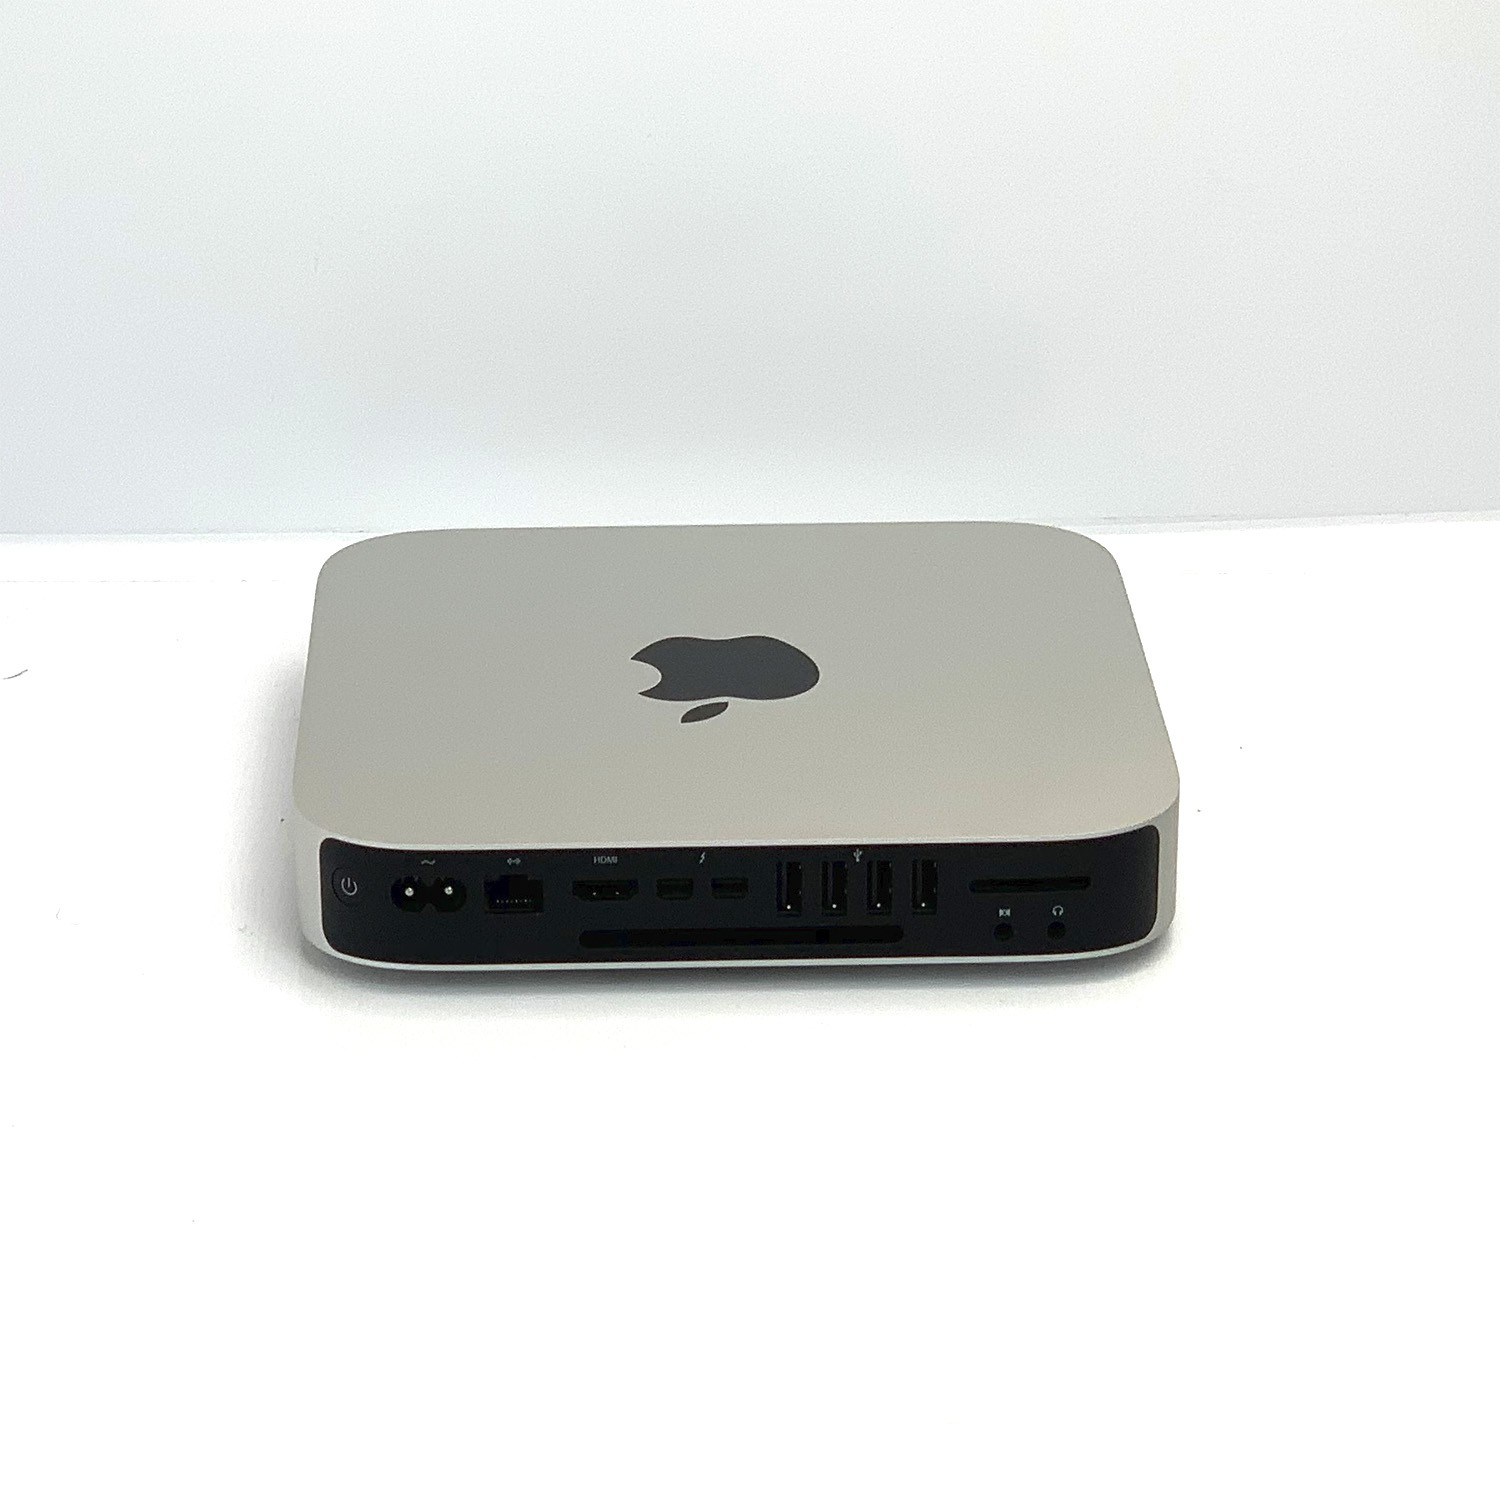 Mac Mini I5 1.4Ghz 4GB 256GB SSD MGEM2LL/A Seminovo